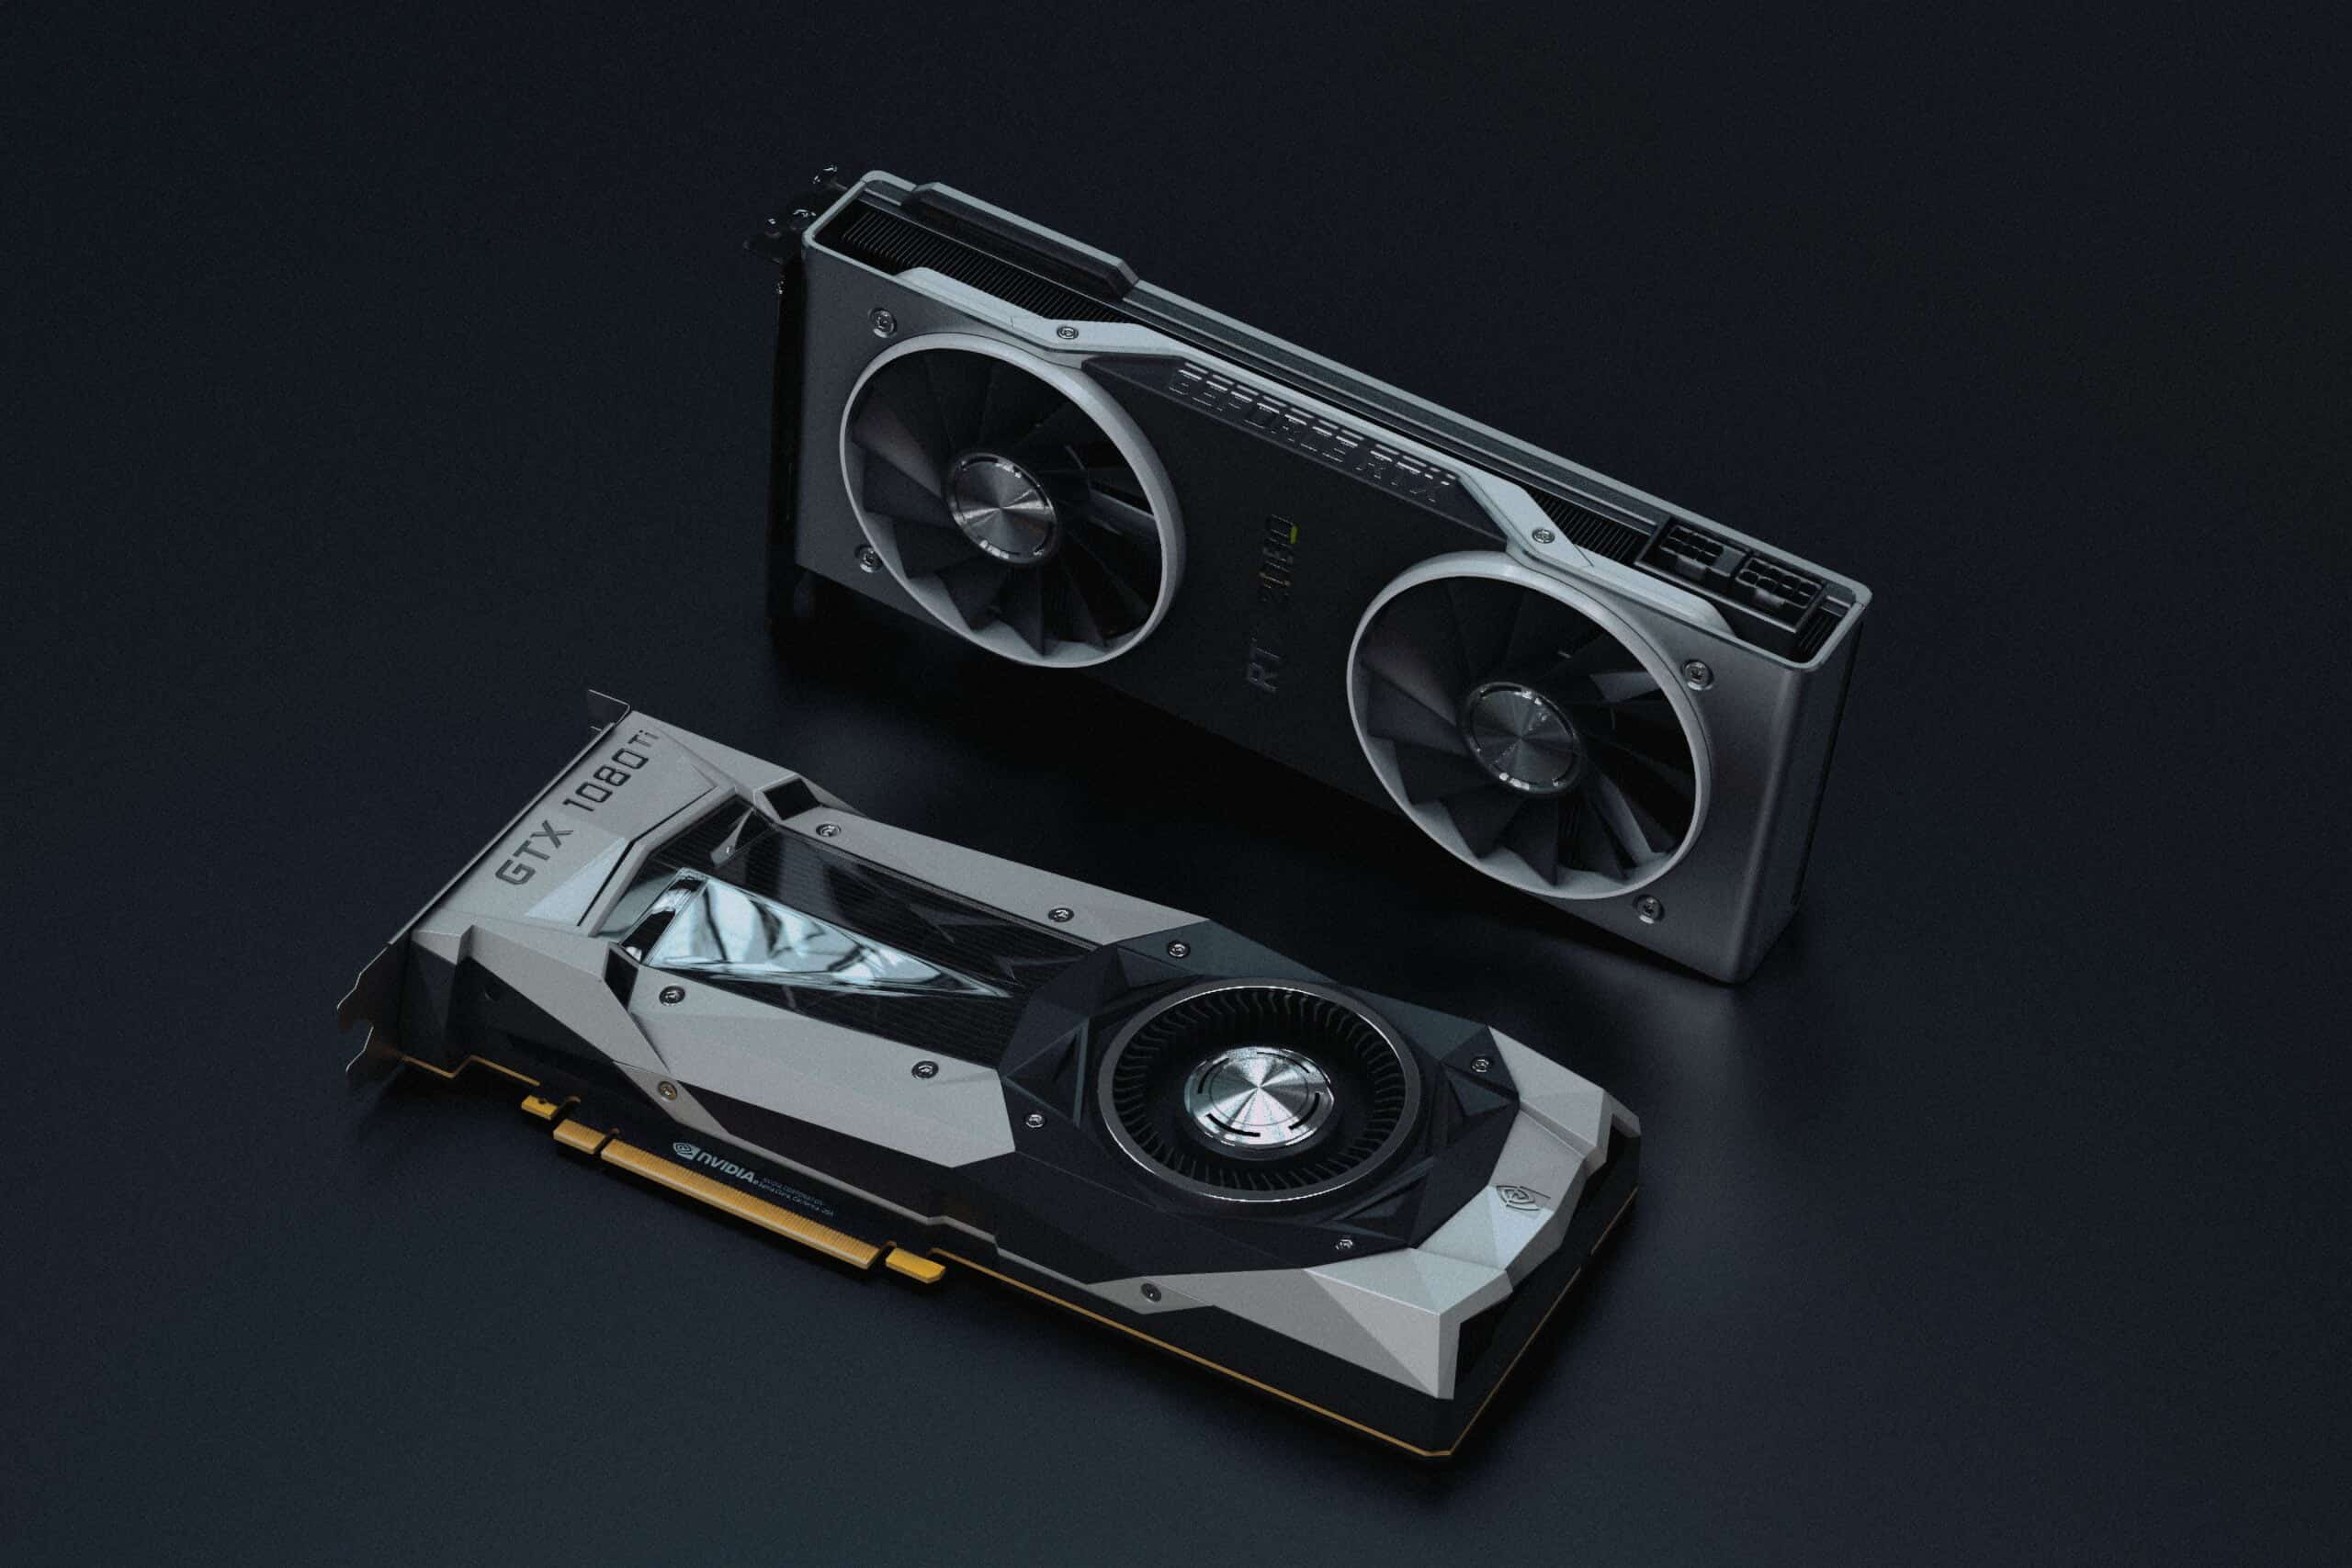 Analysing RTX 3080 and RTX 3090 benchmarks for creative applications